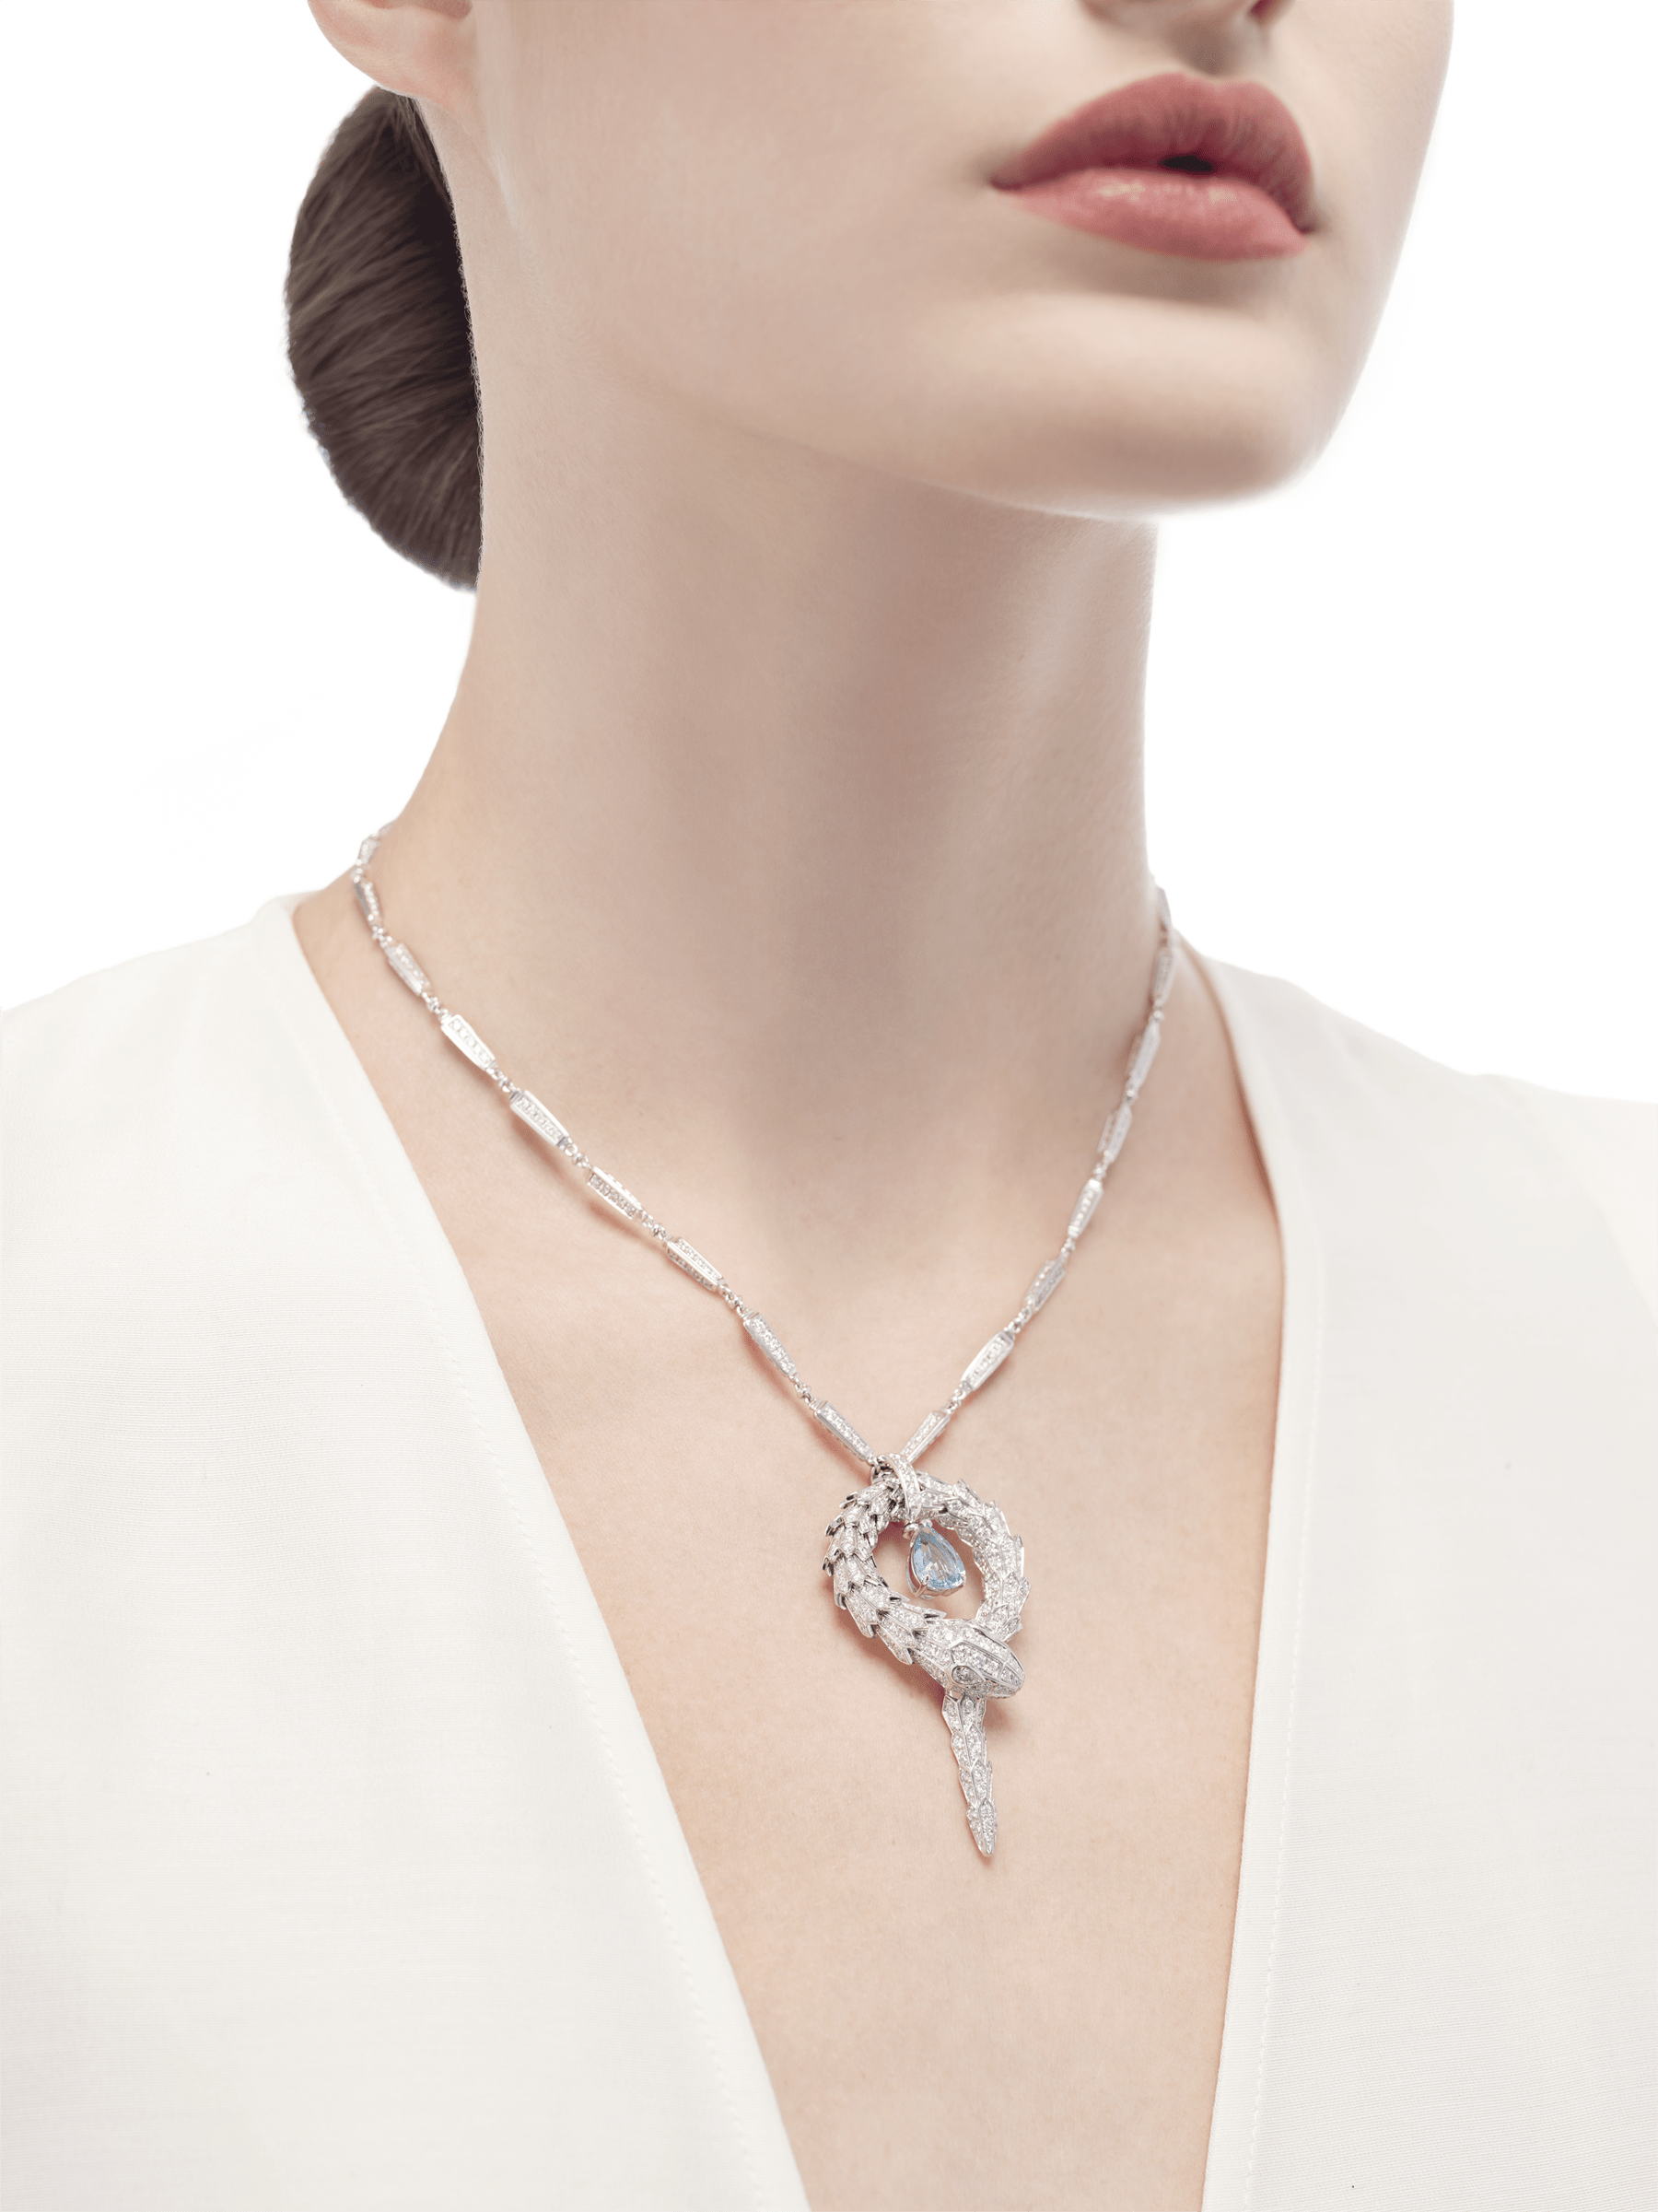 Serpenti small pendant in 18 kt white gold with aquamarine and pavé diamonds. 354090 image 2